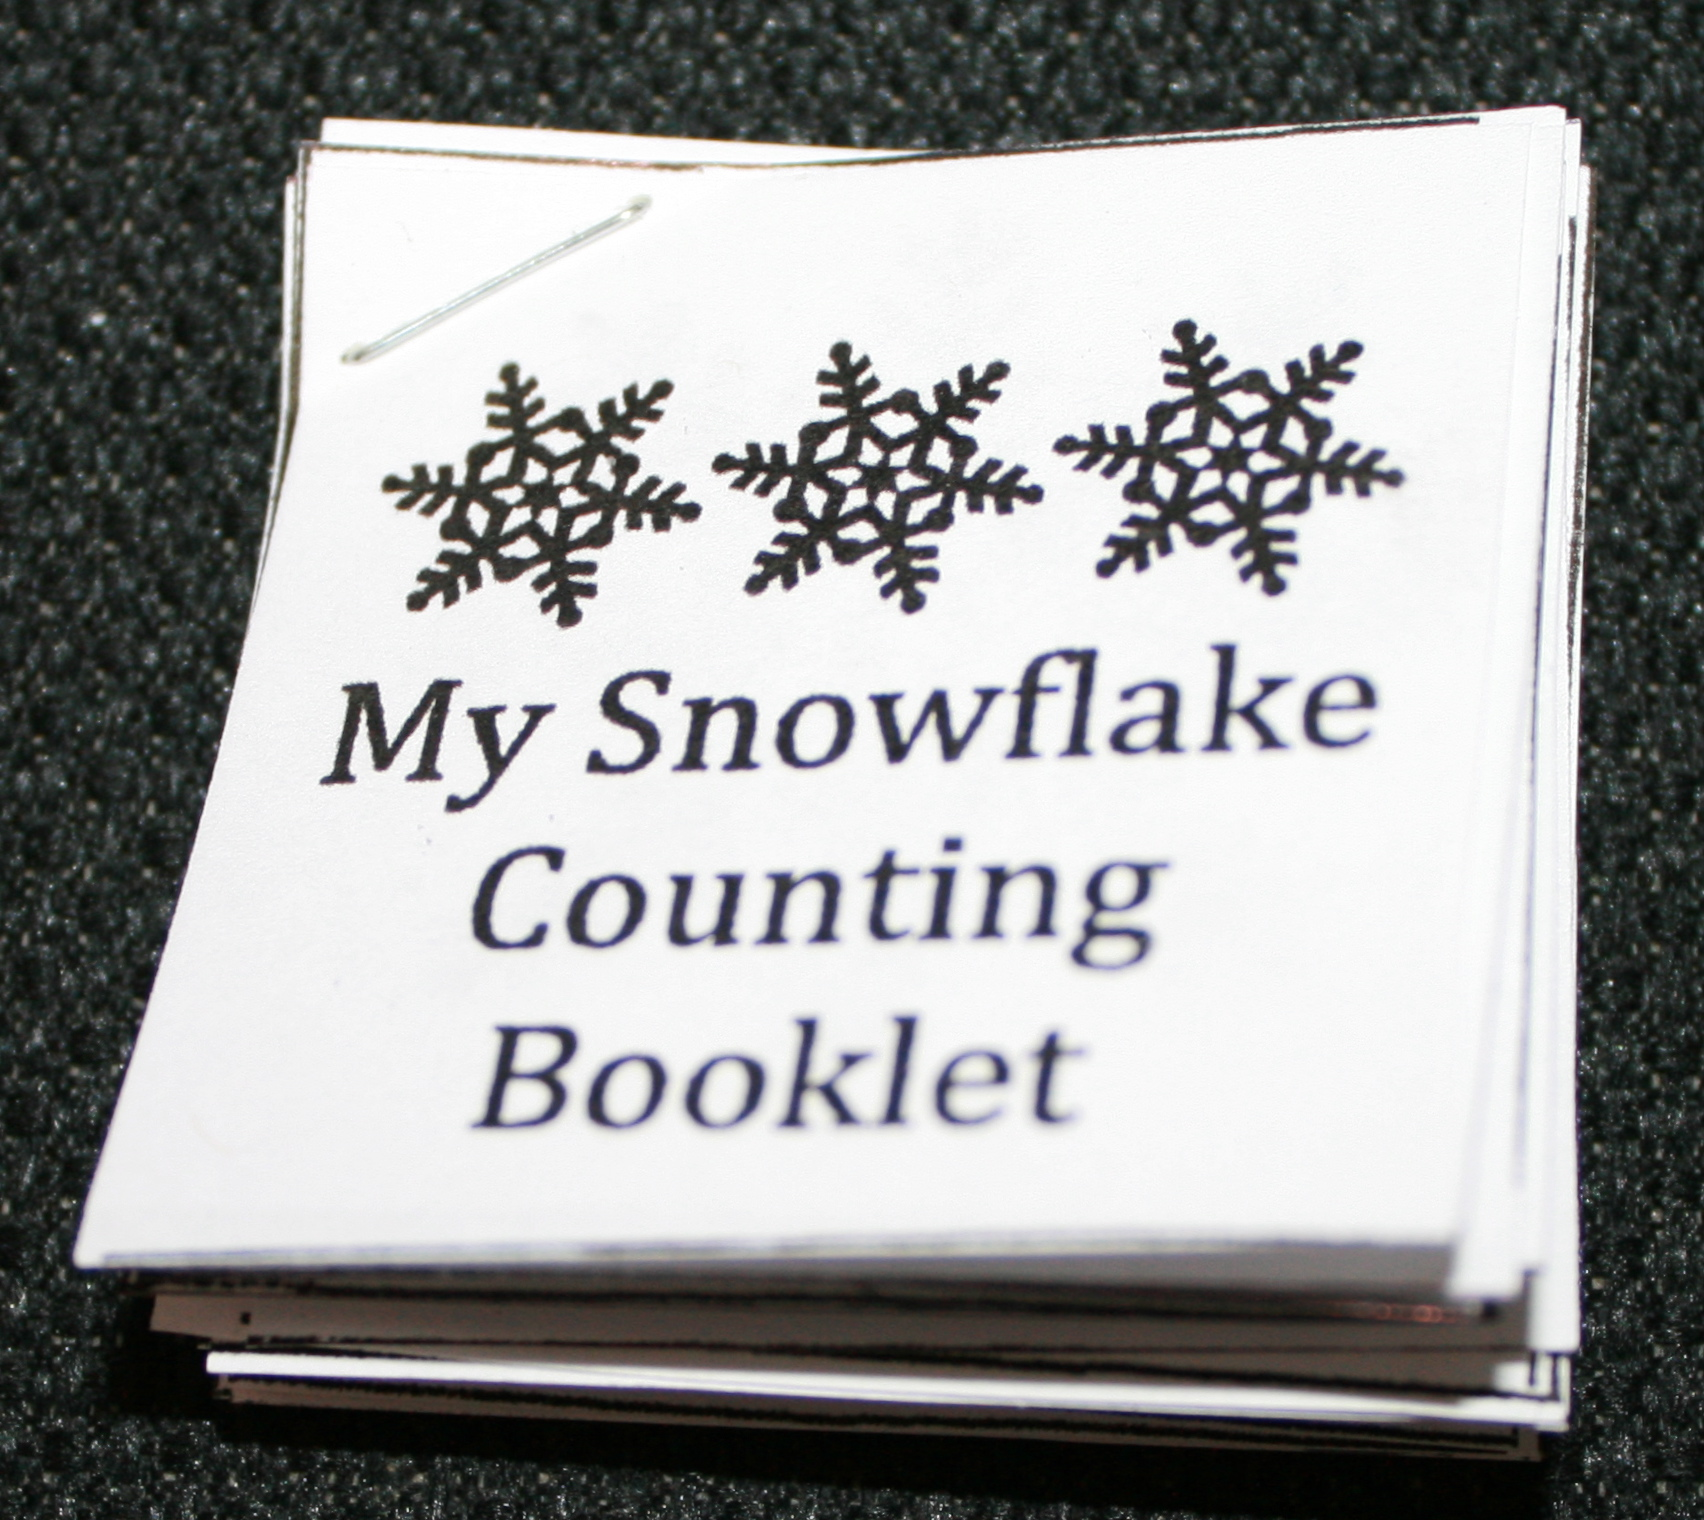 snowflake booklet, snowman activities, snowman ideas, snowman centers, snowman math centers, snowman art projects, snowman crafts, math centers, winter math centers, addition and subtraction activities, addition and subtraction snowman, snowment activities,